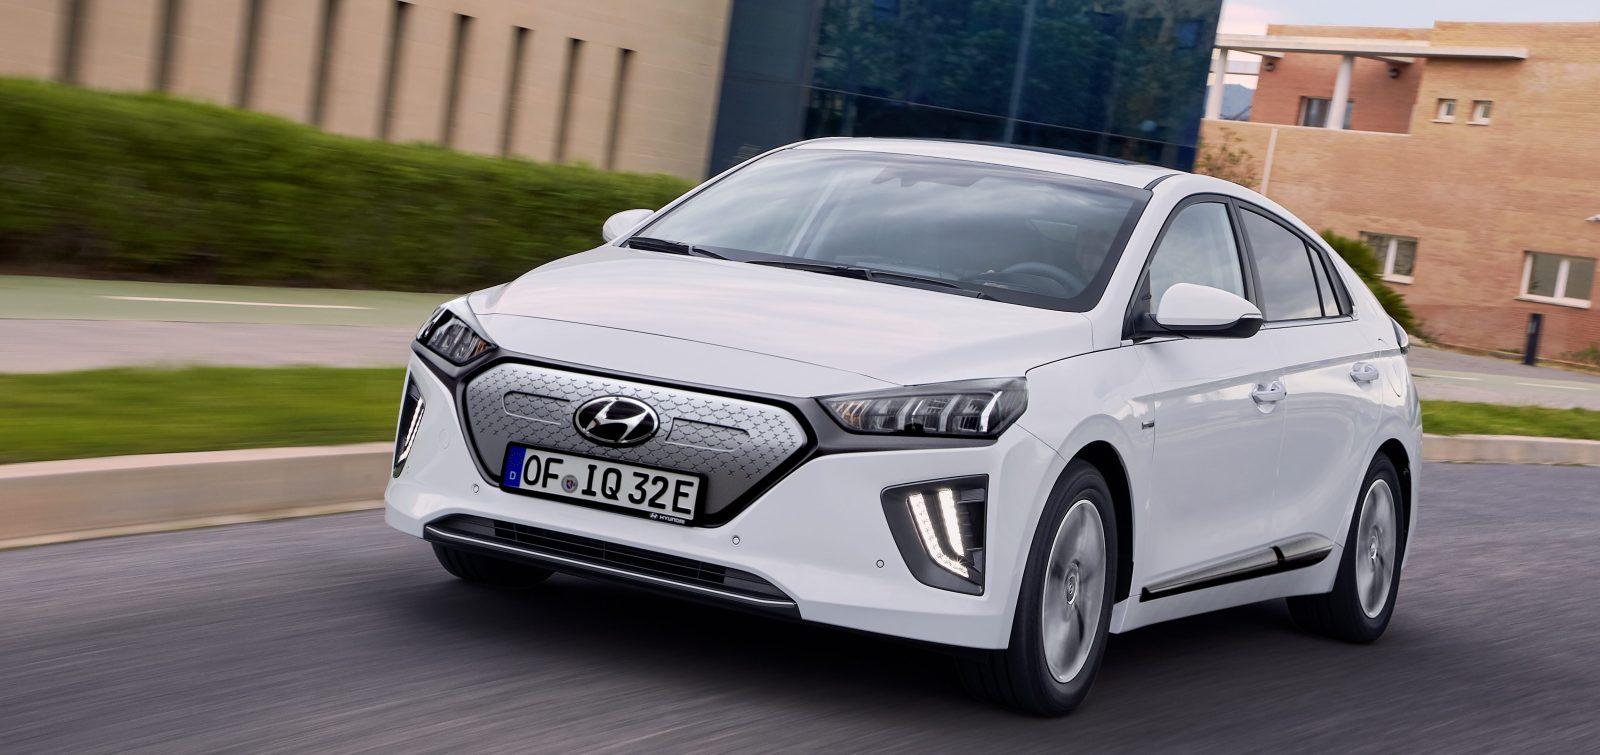 Hyundai Ioniq Electric 2020's new range comes with higher price tag: $33,000